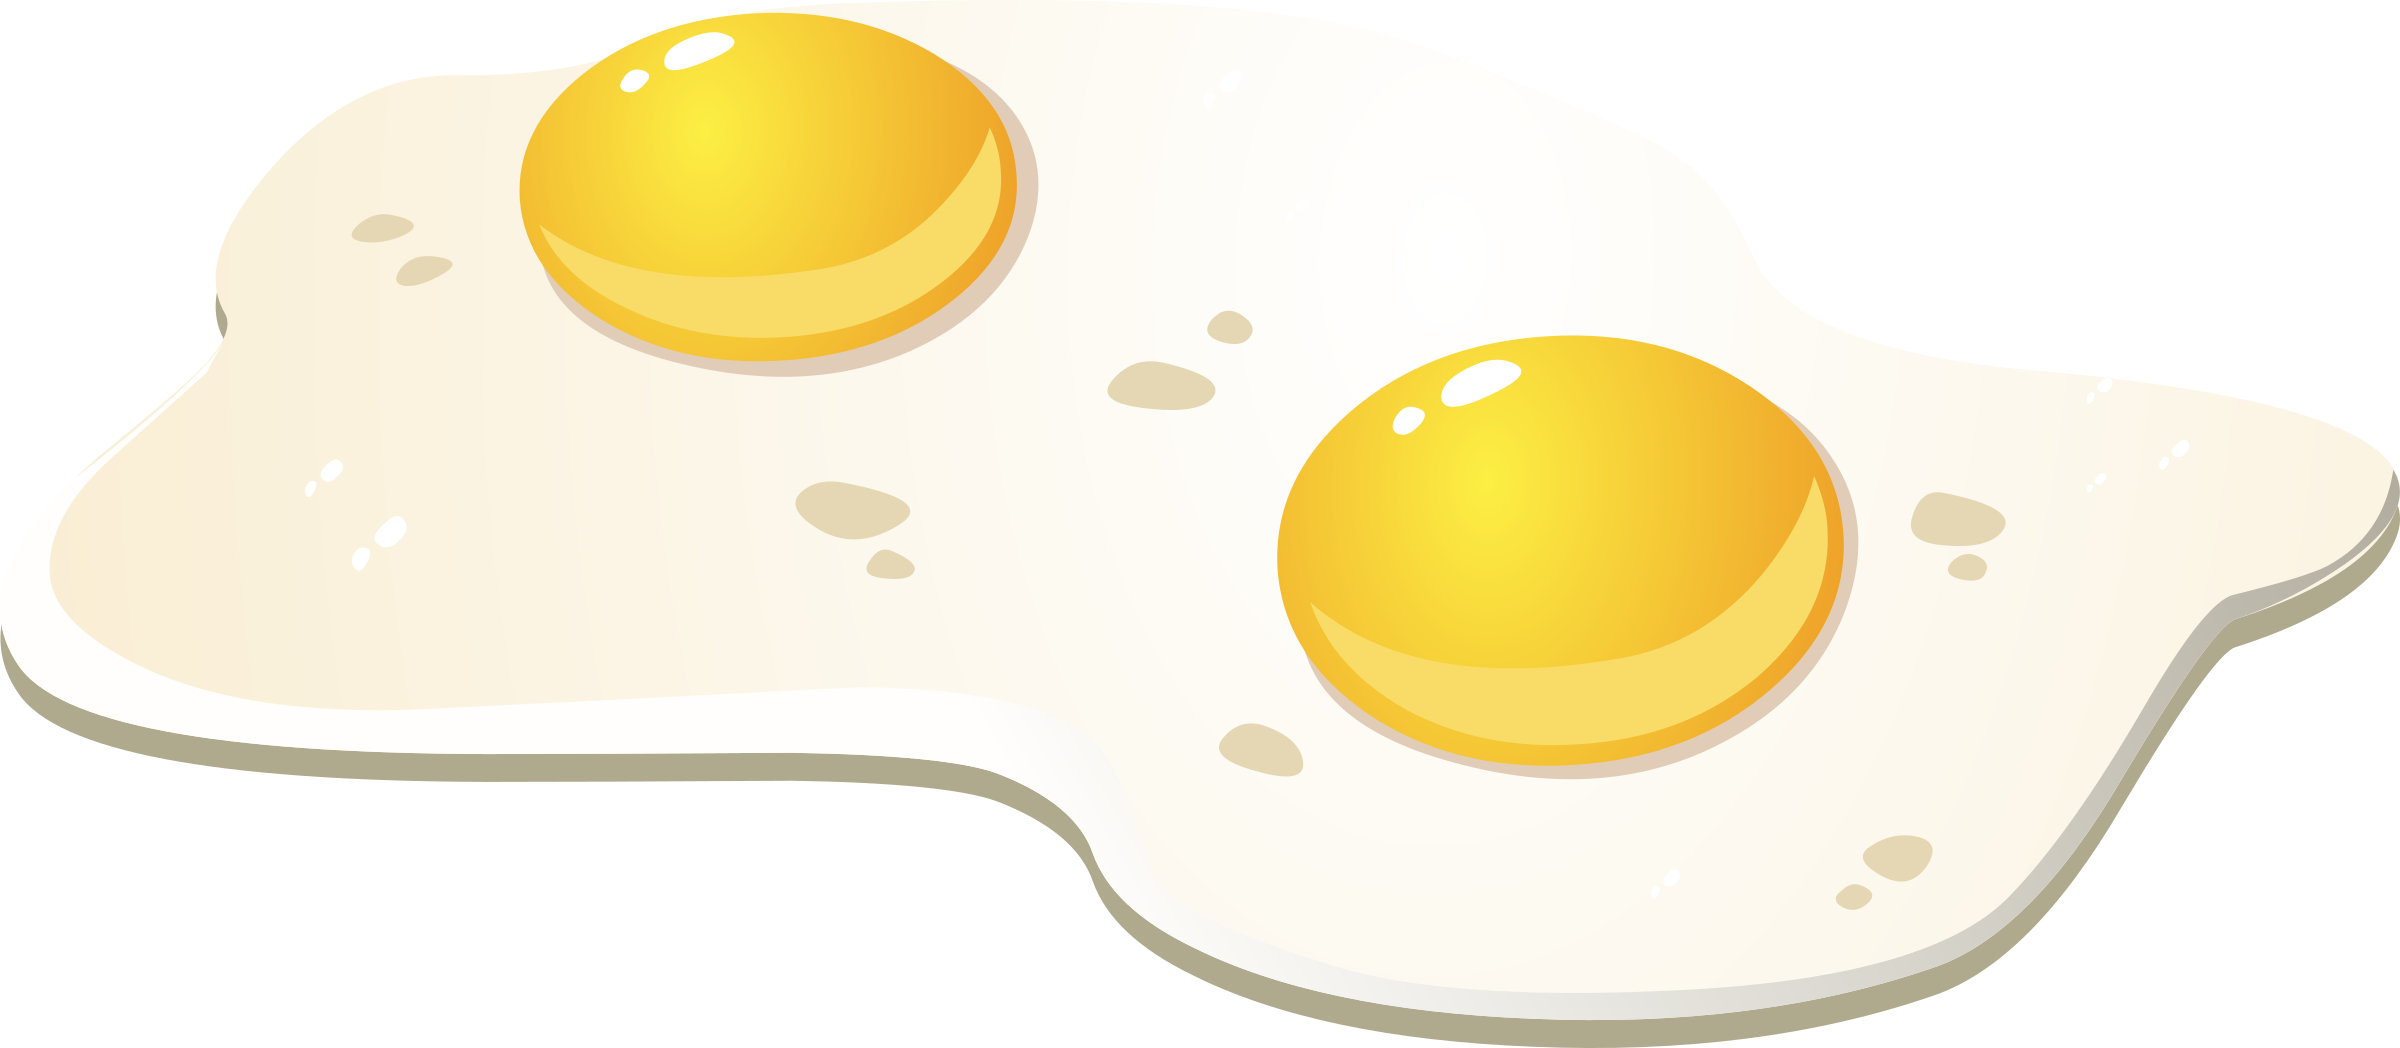 2 eggs png. Food fried icons free